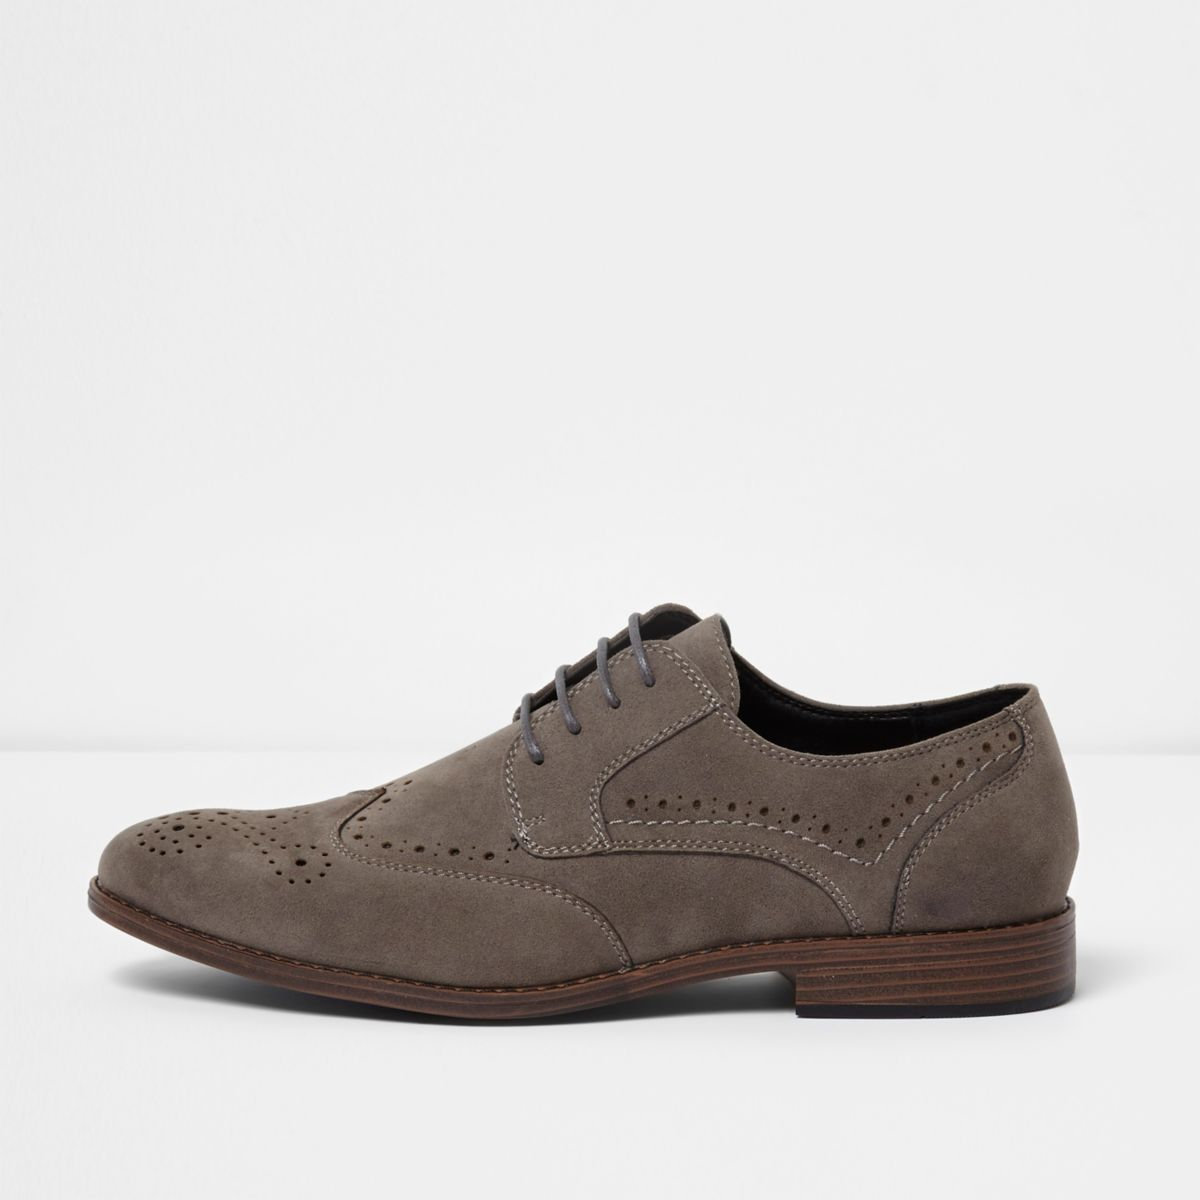 Grey brogues